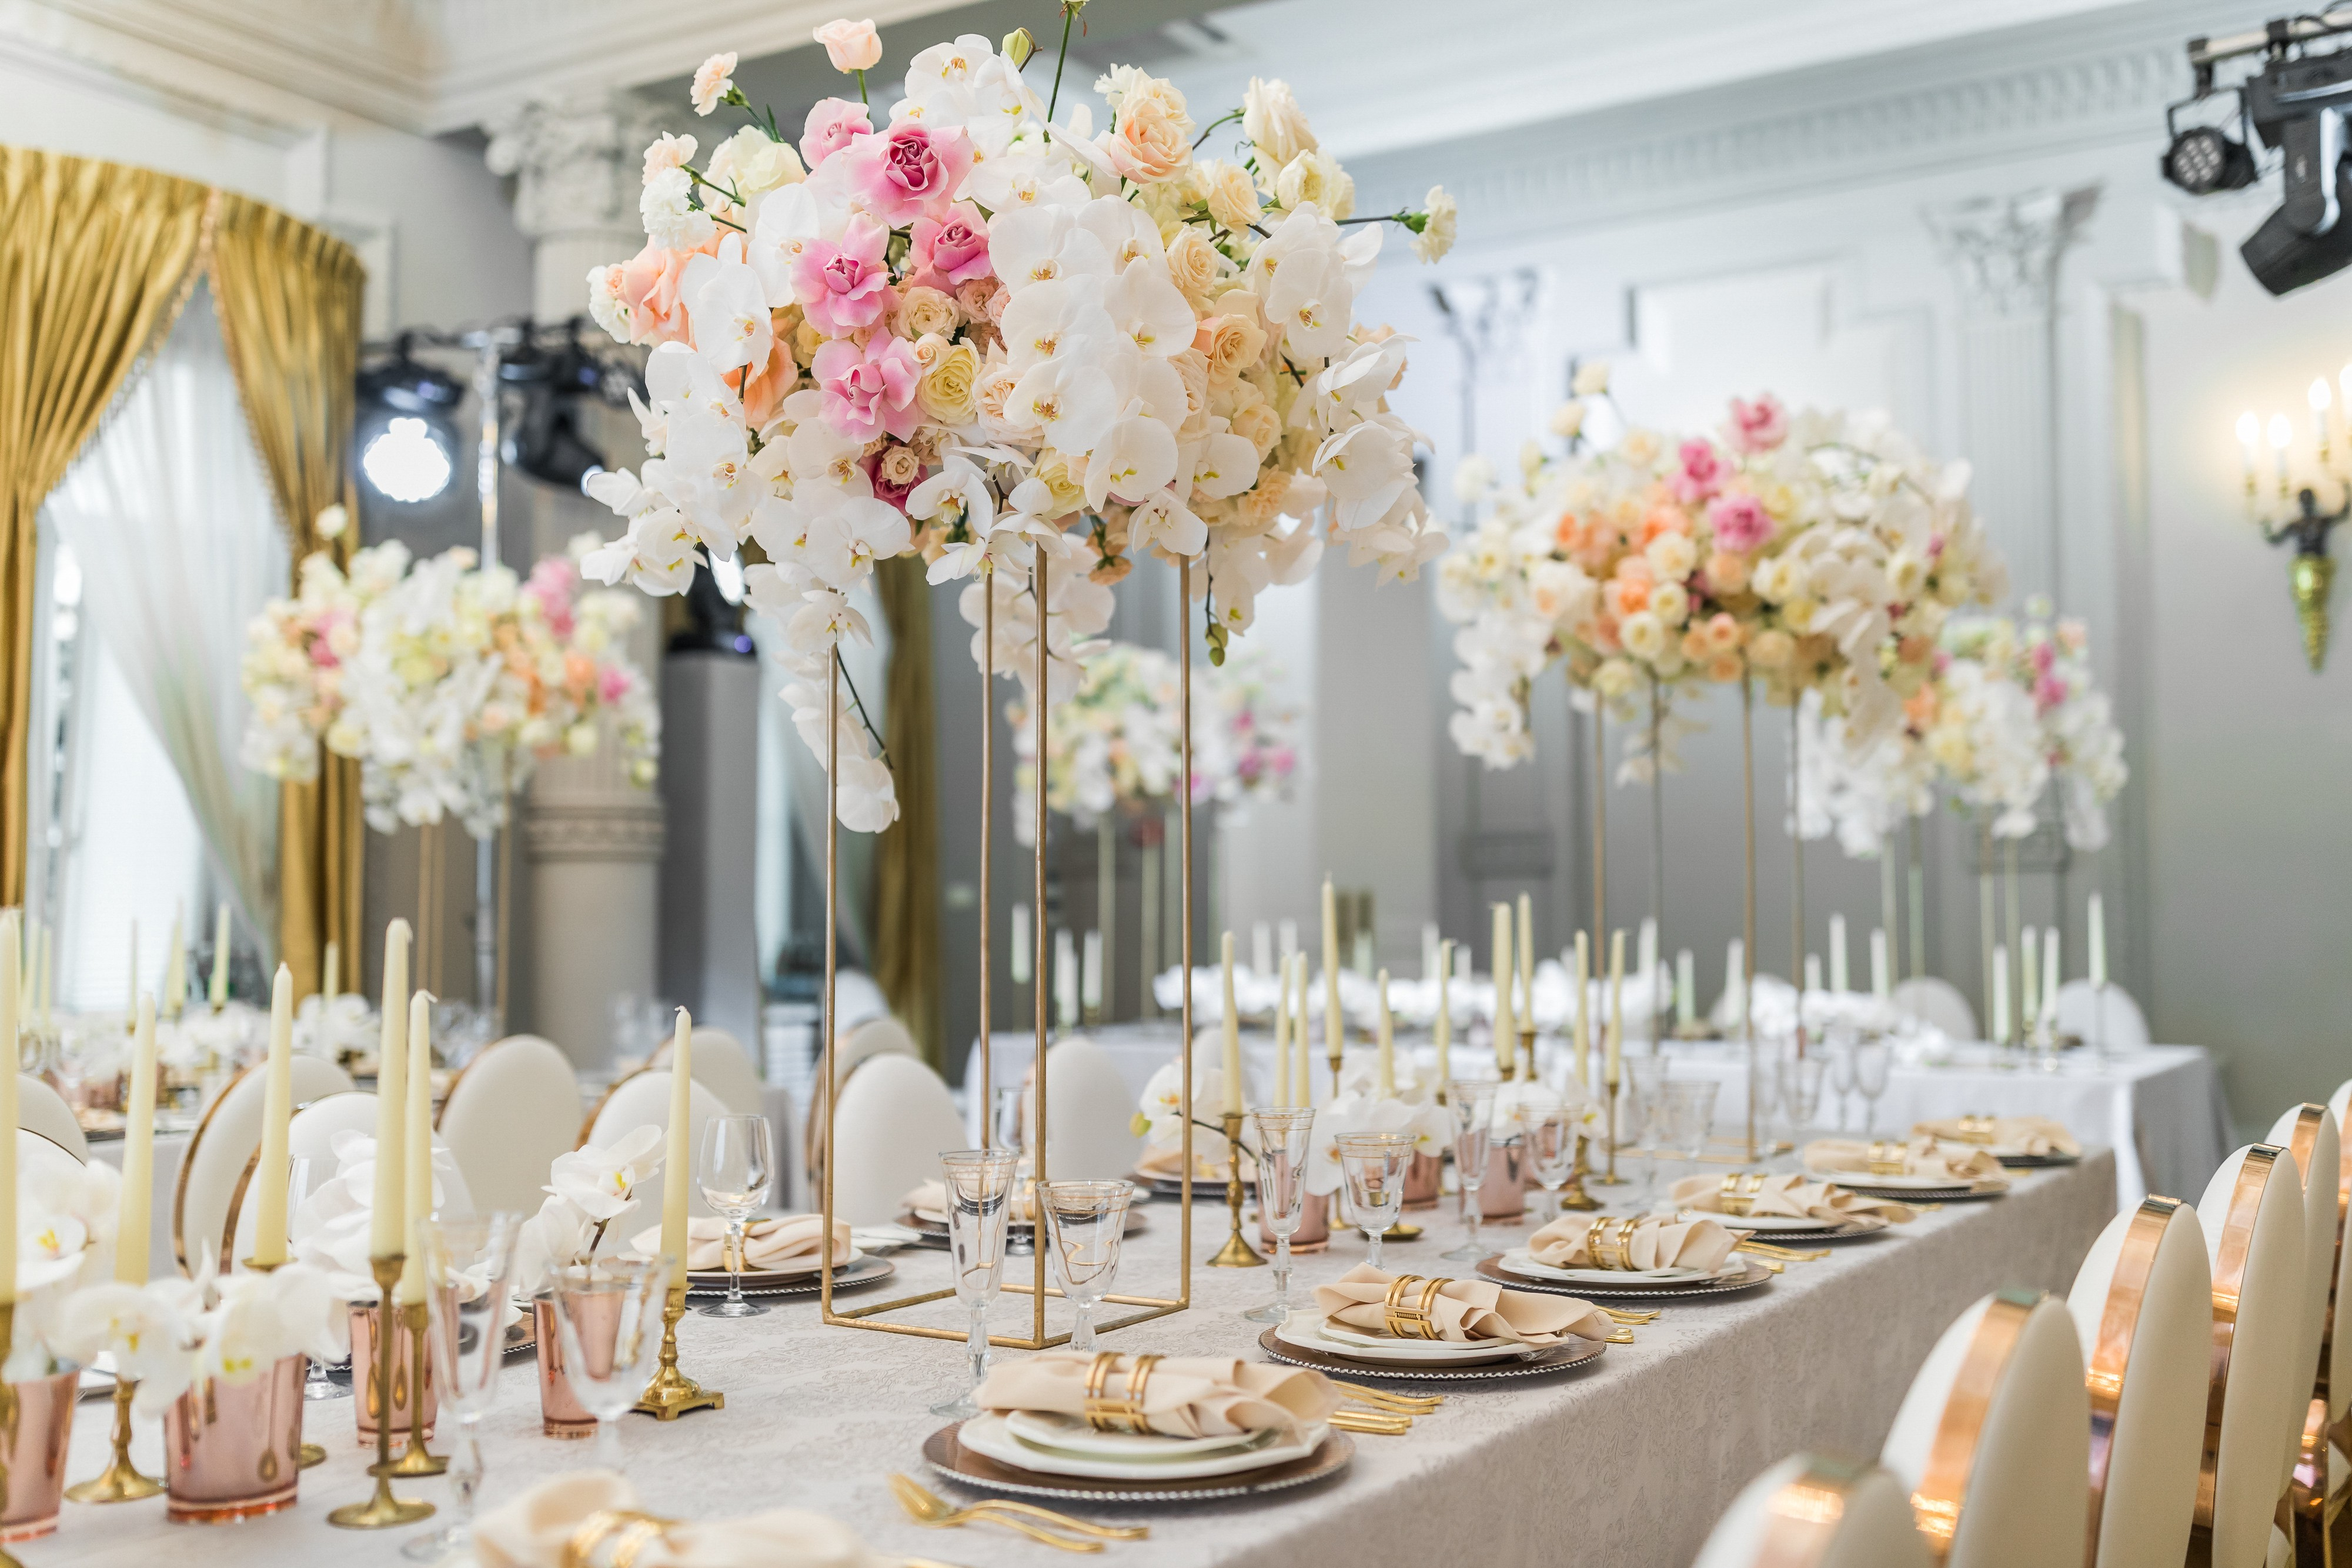 8 Smart Ways to Save on Your Wedding Decor Costs  by Nicholle